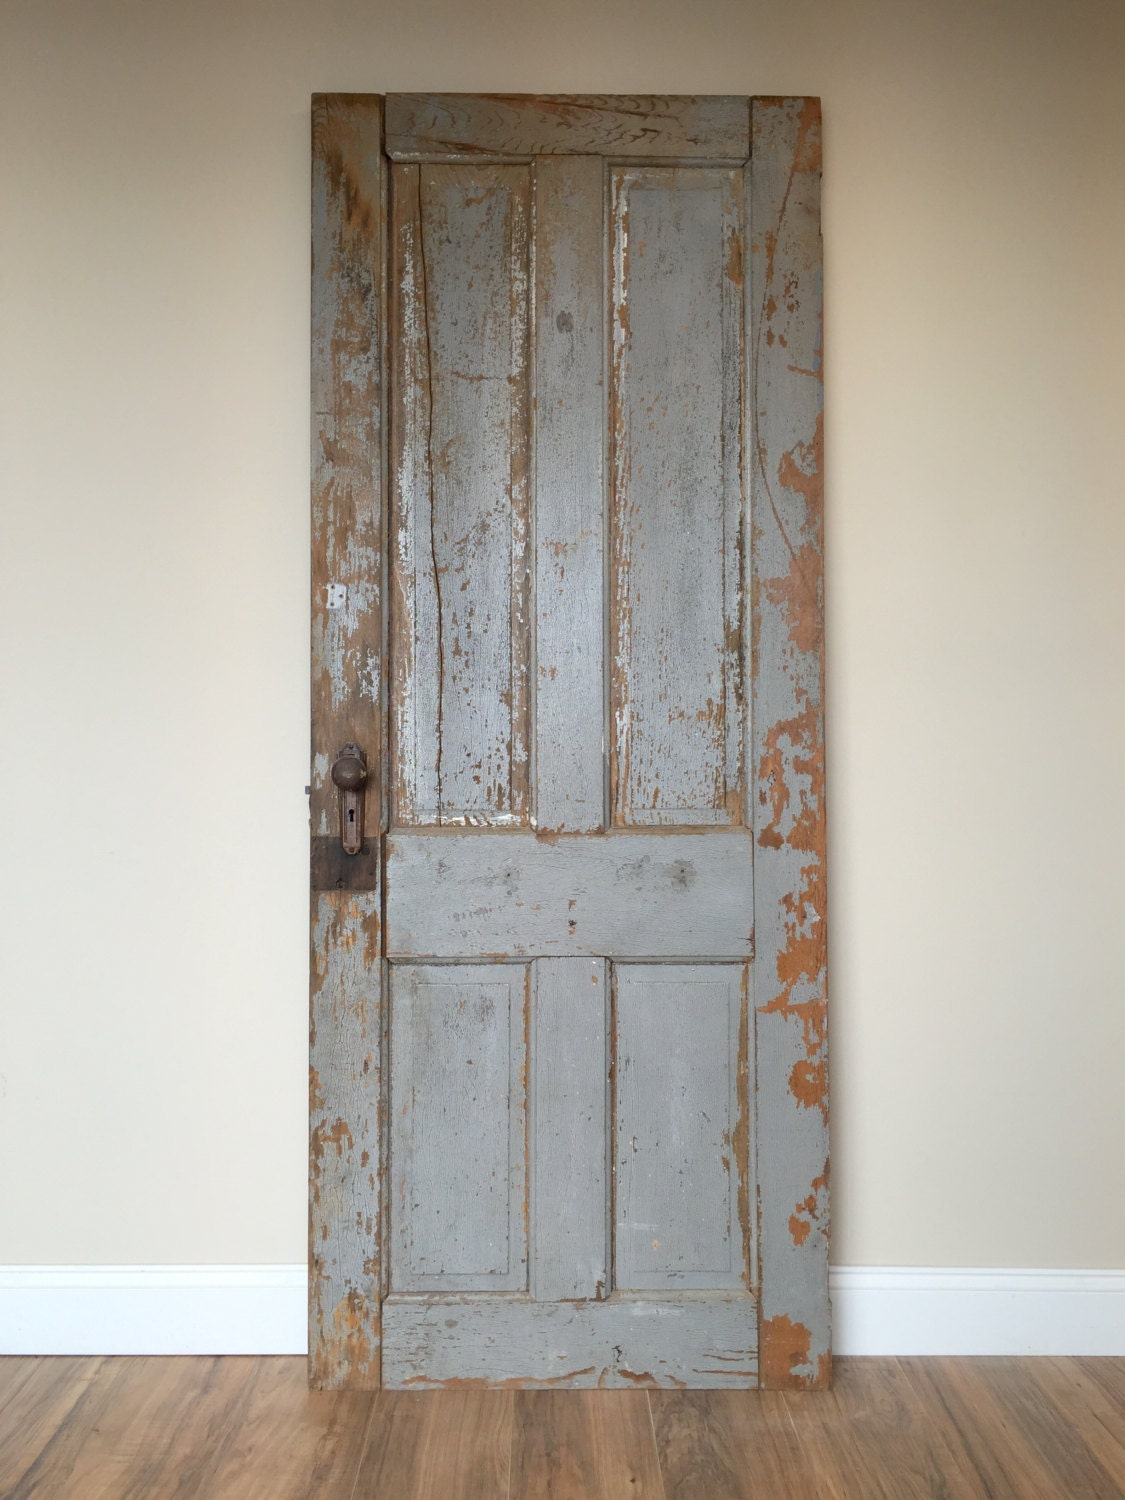 Antique door rustic door wooden door vintage door for Antique door decoration